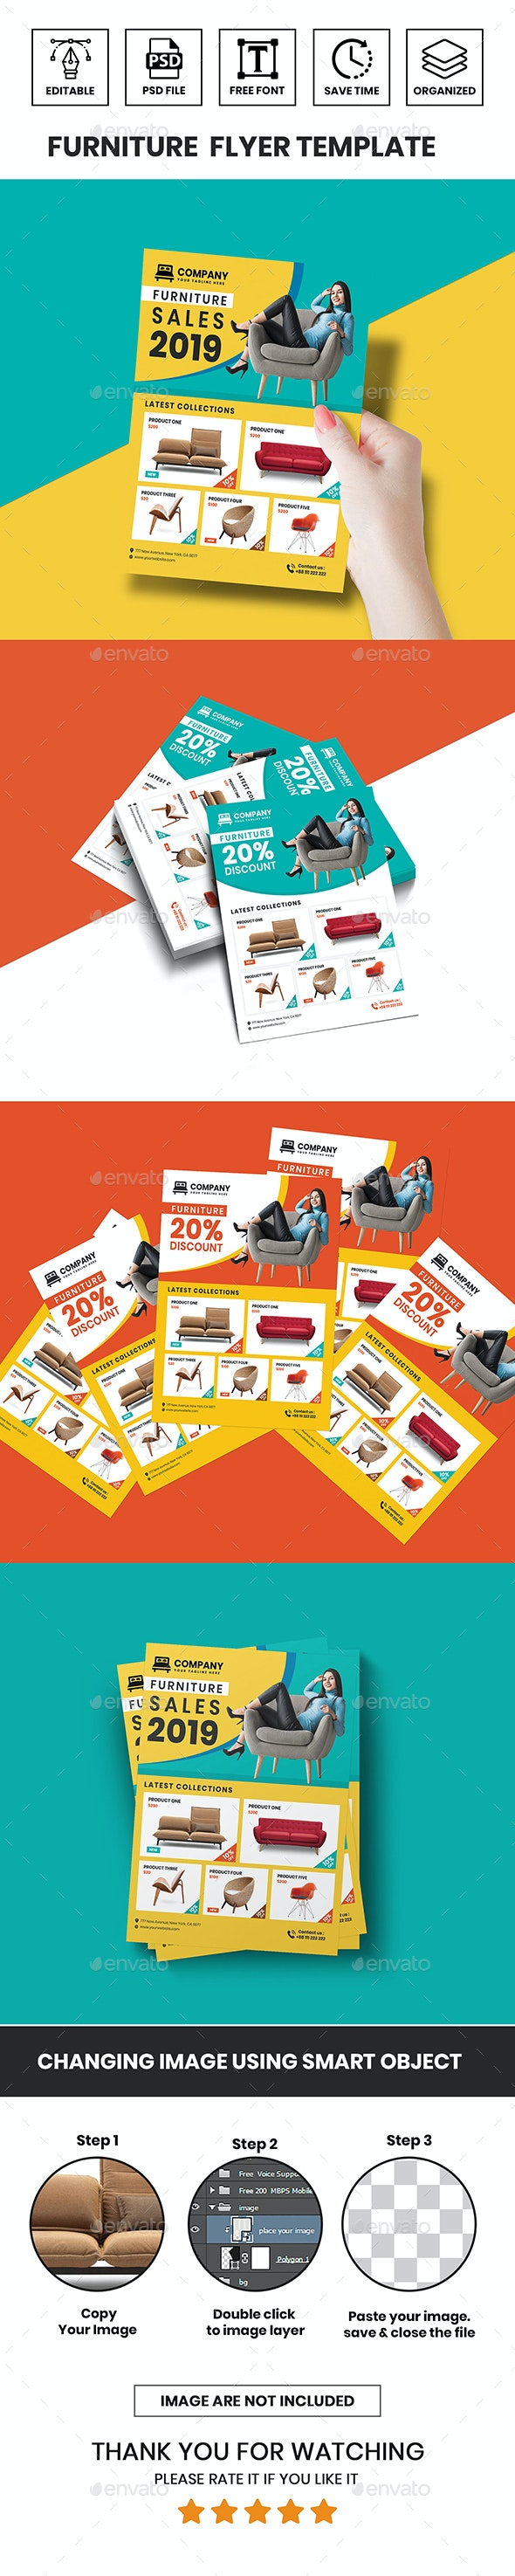 Furniture Flyer Template - Flyers Print Templates